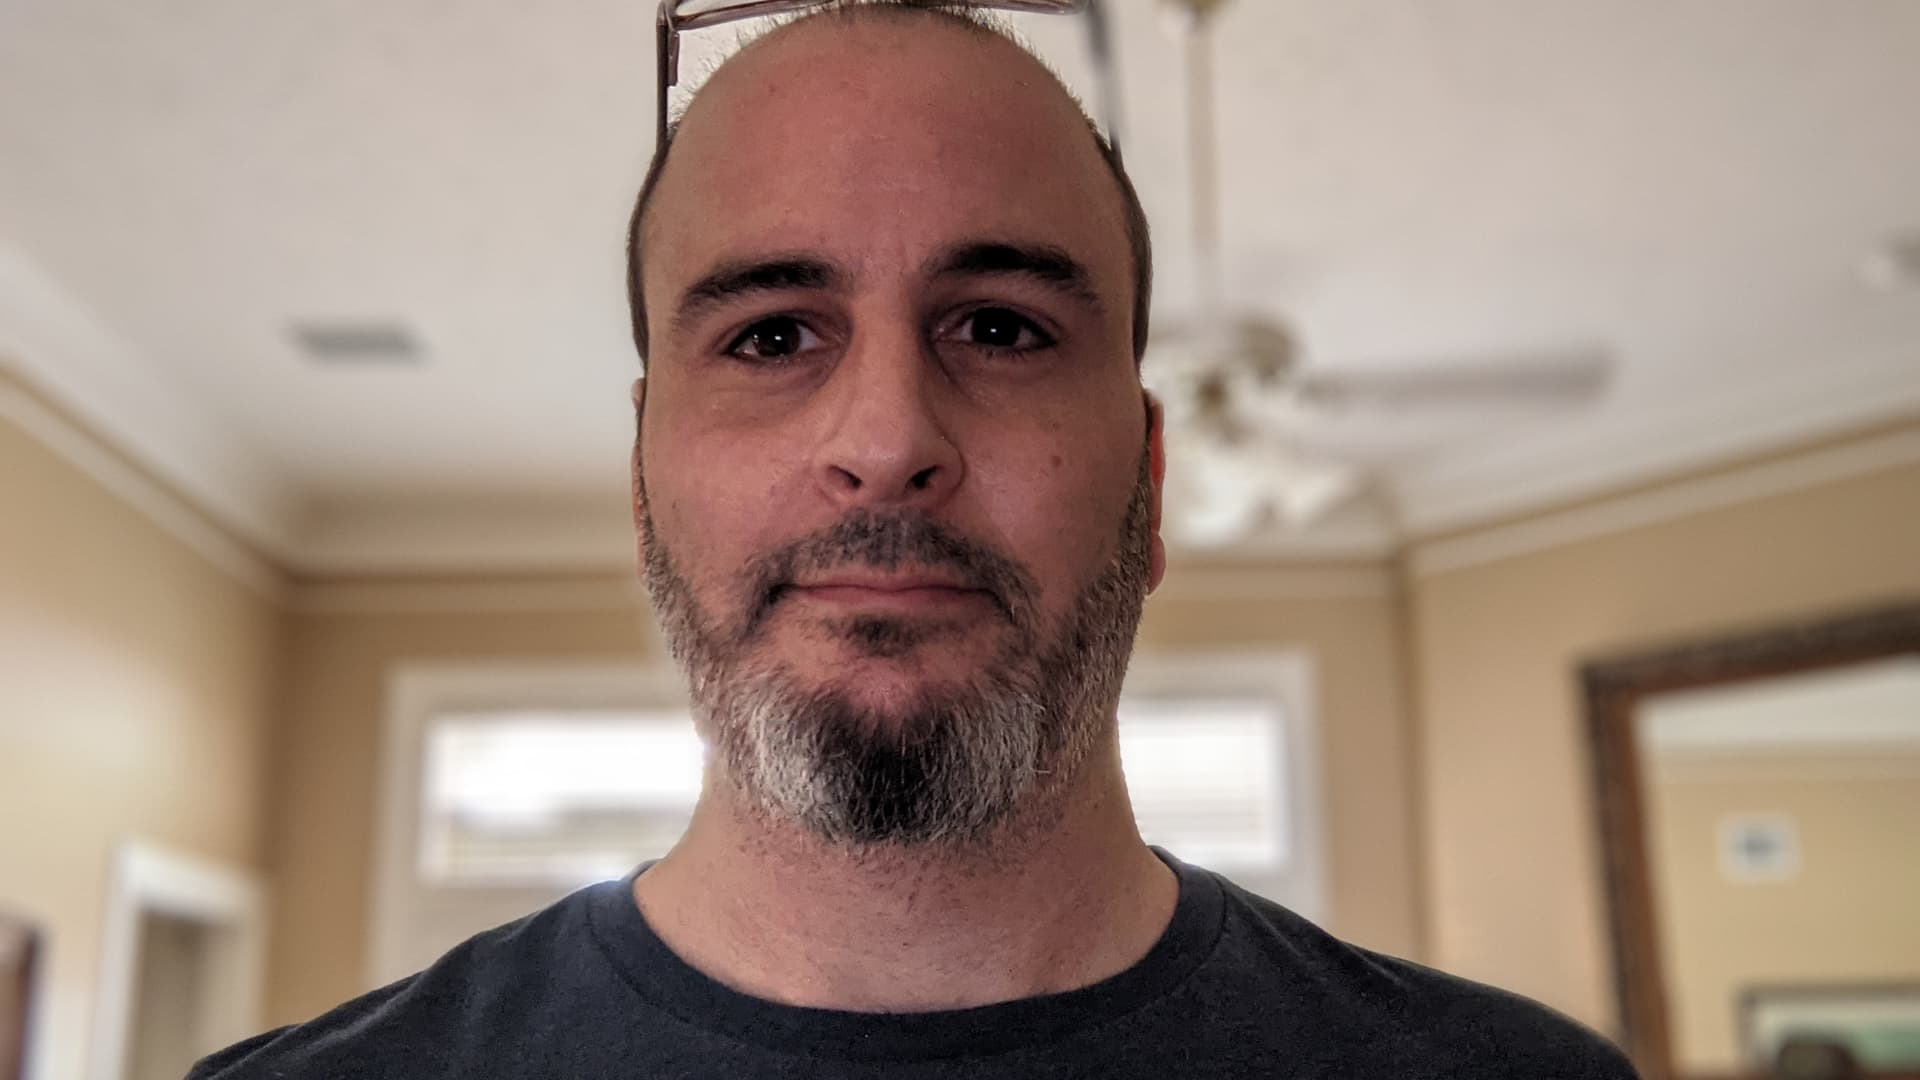 Jeff Lavigne, 42, filed his federal tax return in March. He hasn't yet received his refund. The IRS flagged the return for potential identity fraud.